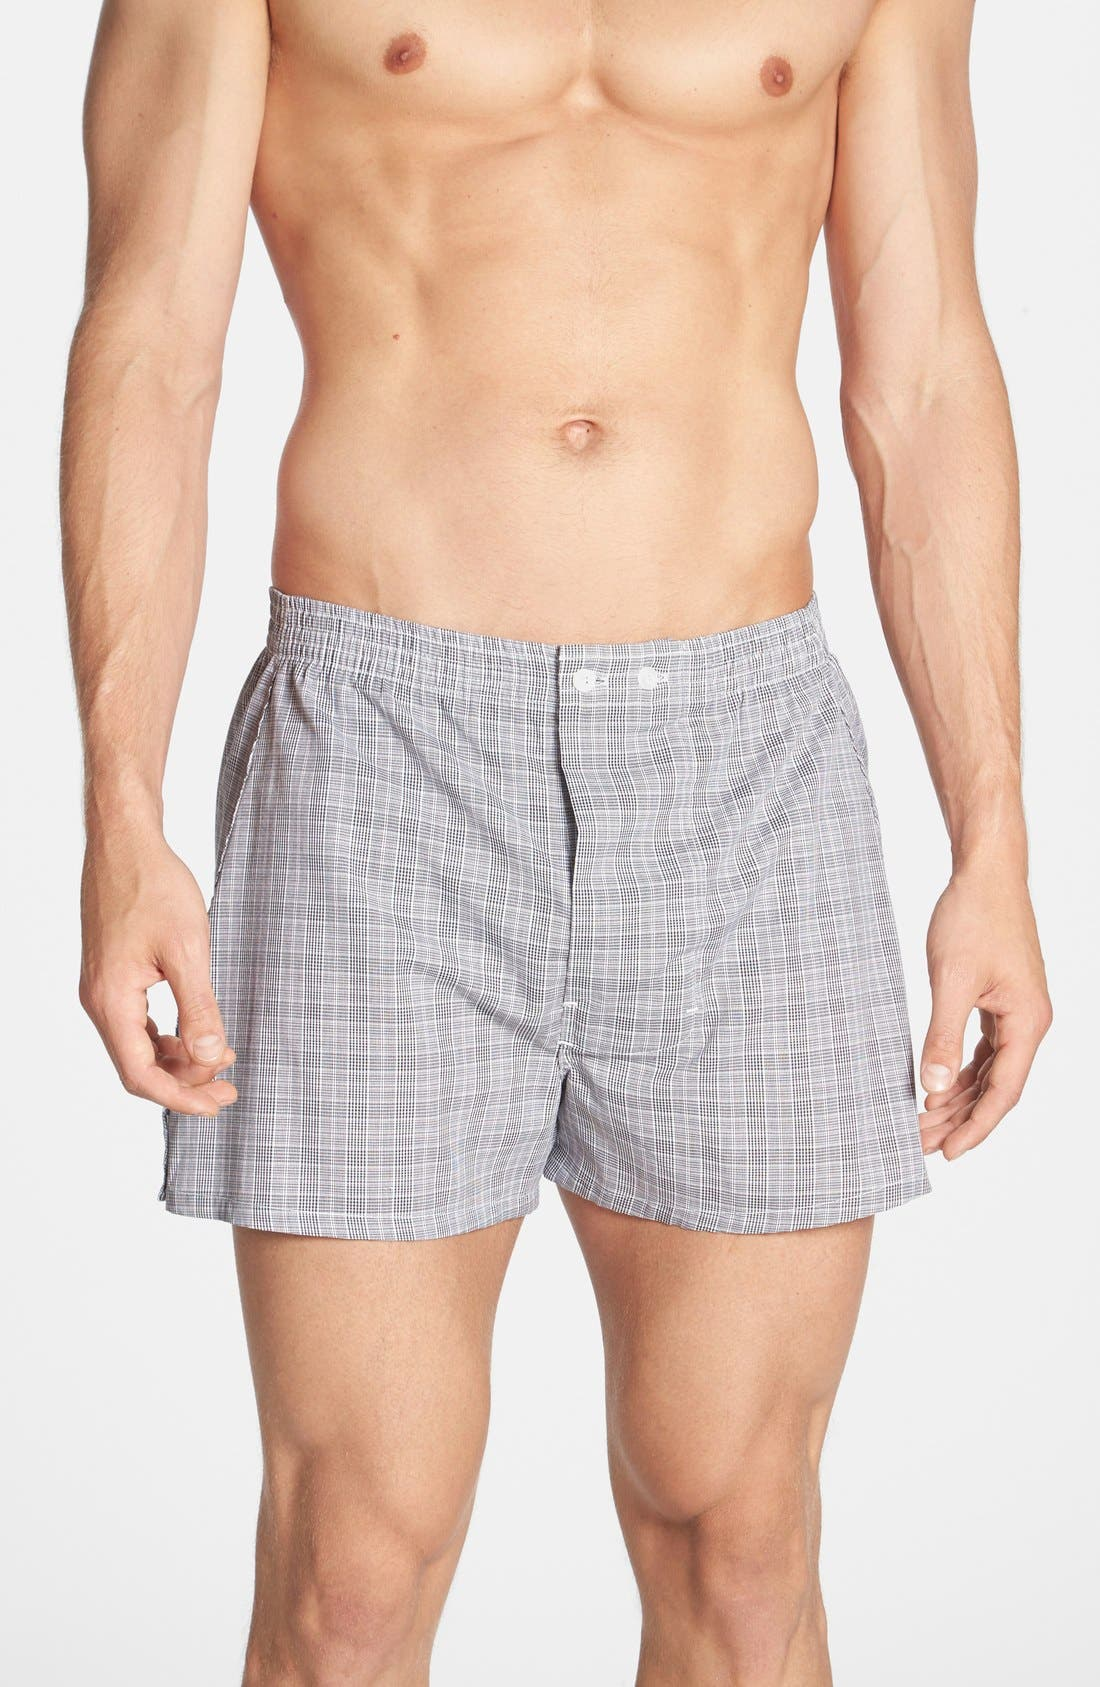 Nordstrom Men's Shop Classic Fit Cotton Boxers (3 for $39.50)